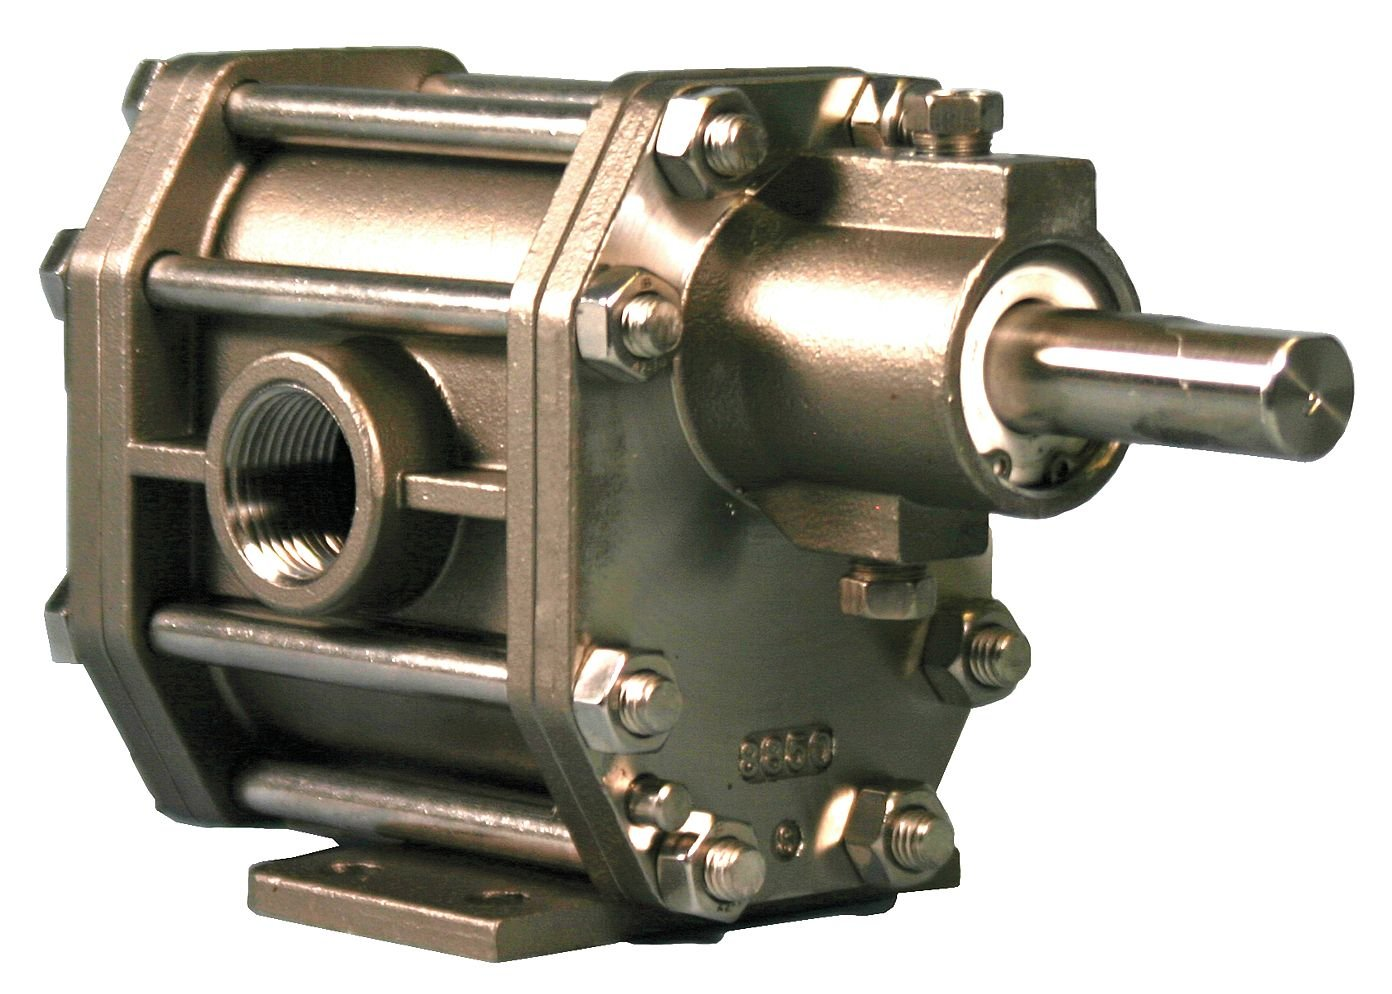 Chemsteel S20716CA-M30 316 Stainless Steel Gear Pump; Viton Seal, 4 GPM, 115/230VAC